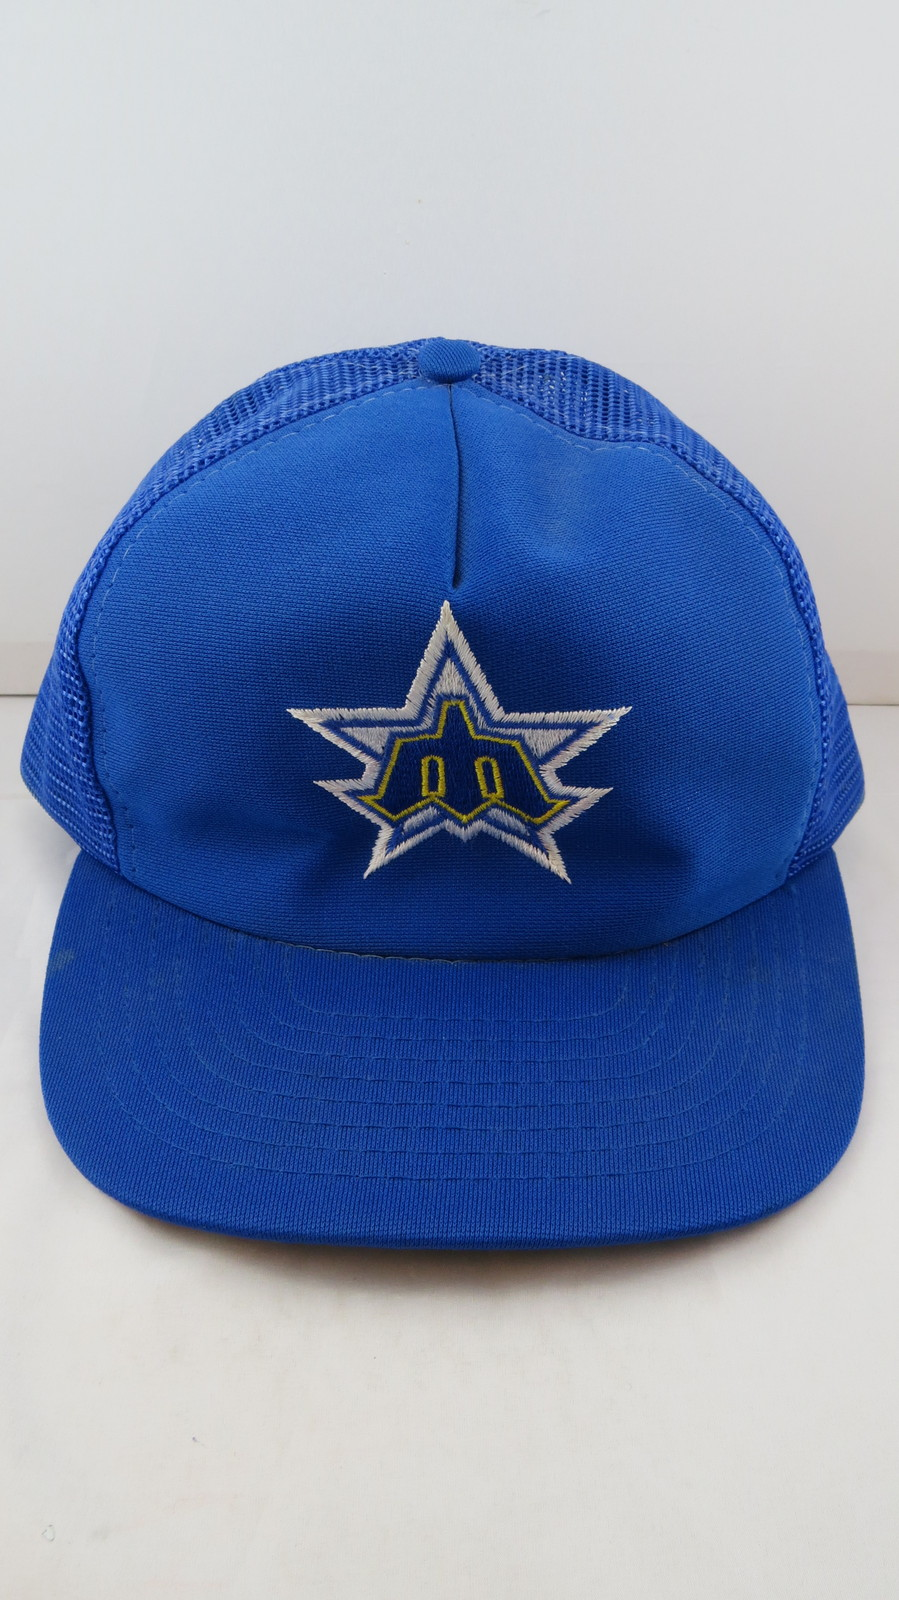 da1537e8daa Seattle Mariners Hat (VTG) - Star Trident and 46 similar items